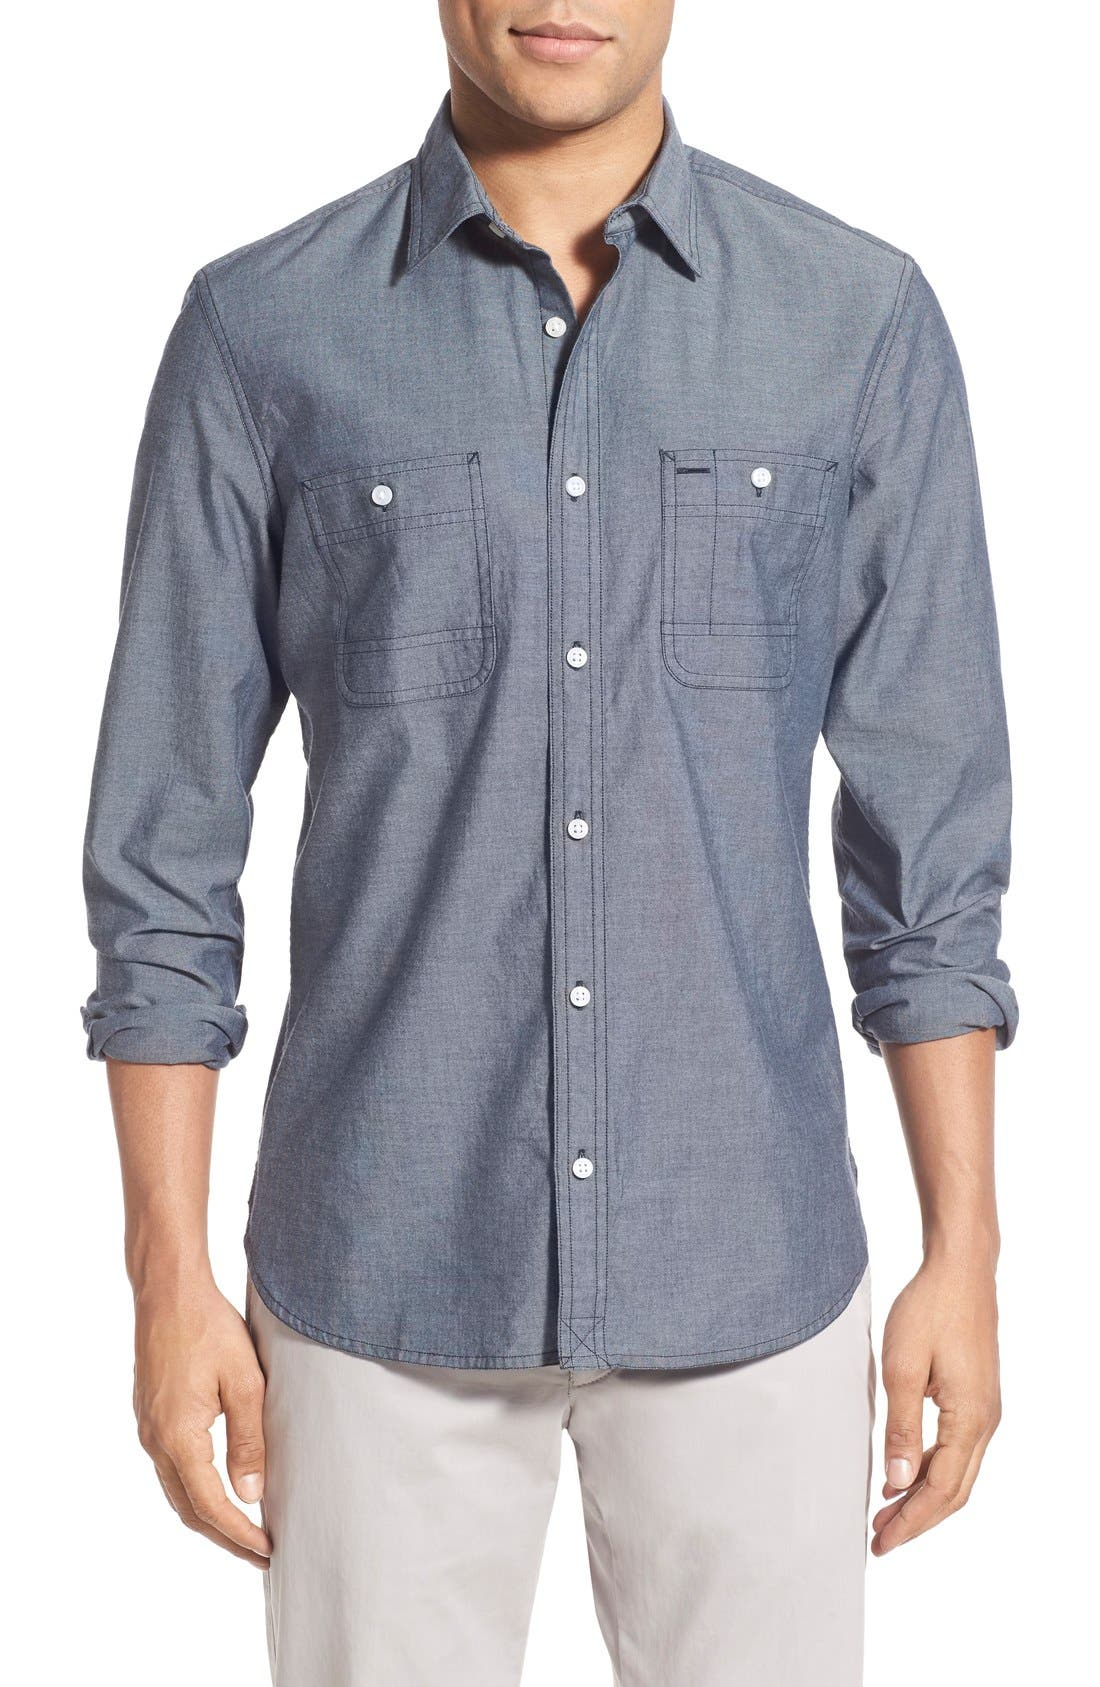 Main Image - Wallin & Bros. 'Workwear' Trim Fit Chambray Sport Shirt (Regular & Tall)